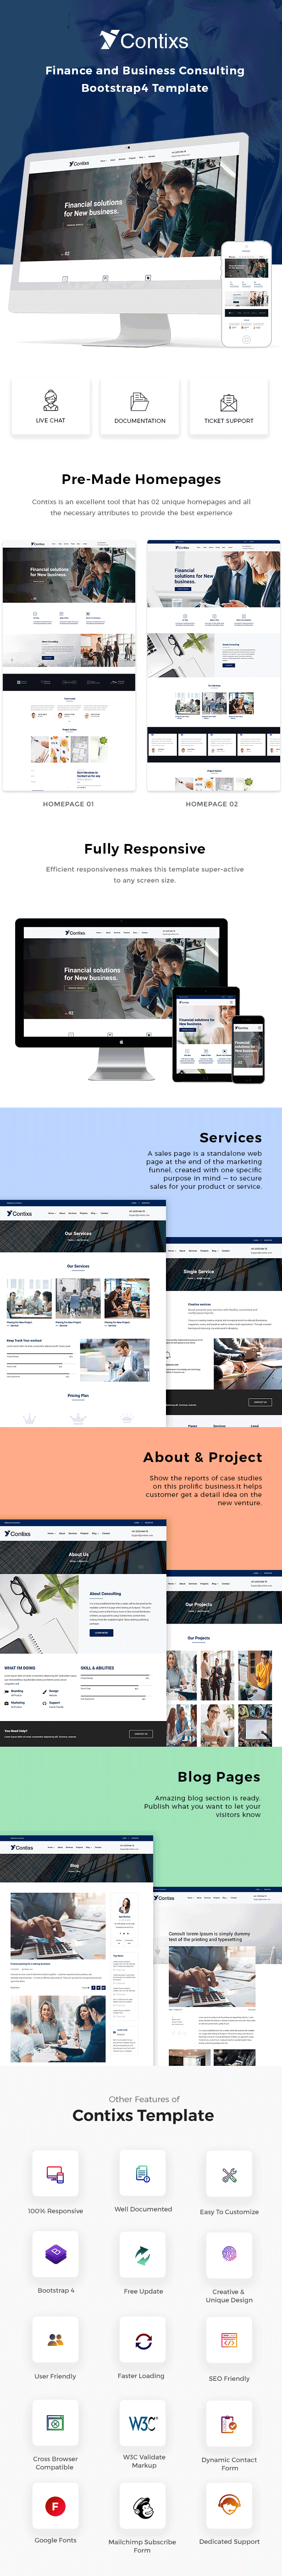 Contixs - Business Consulting HTML Template - 1